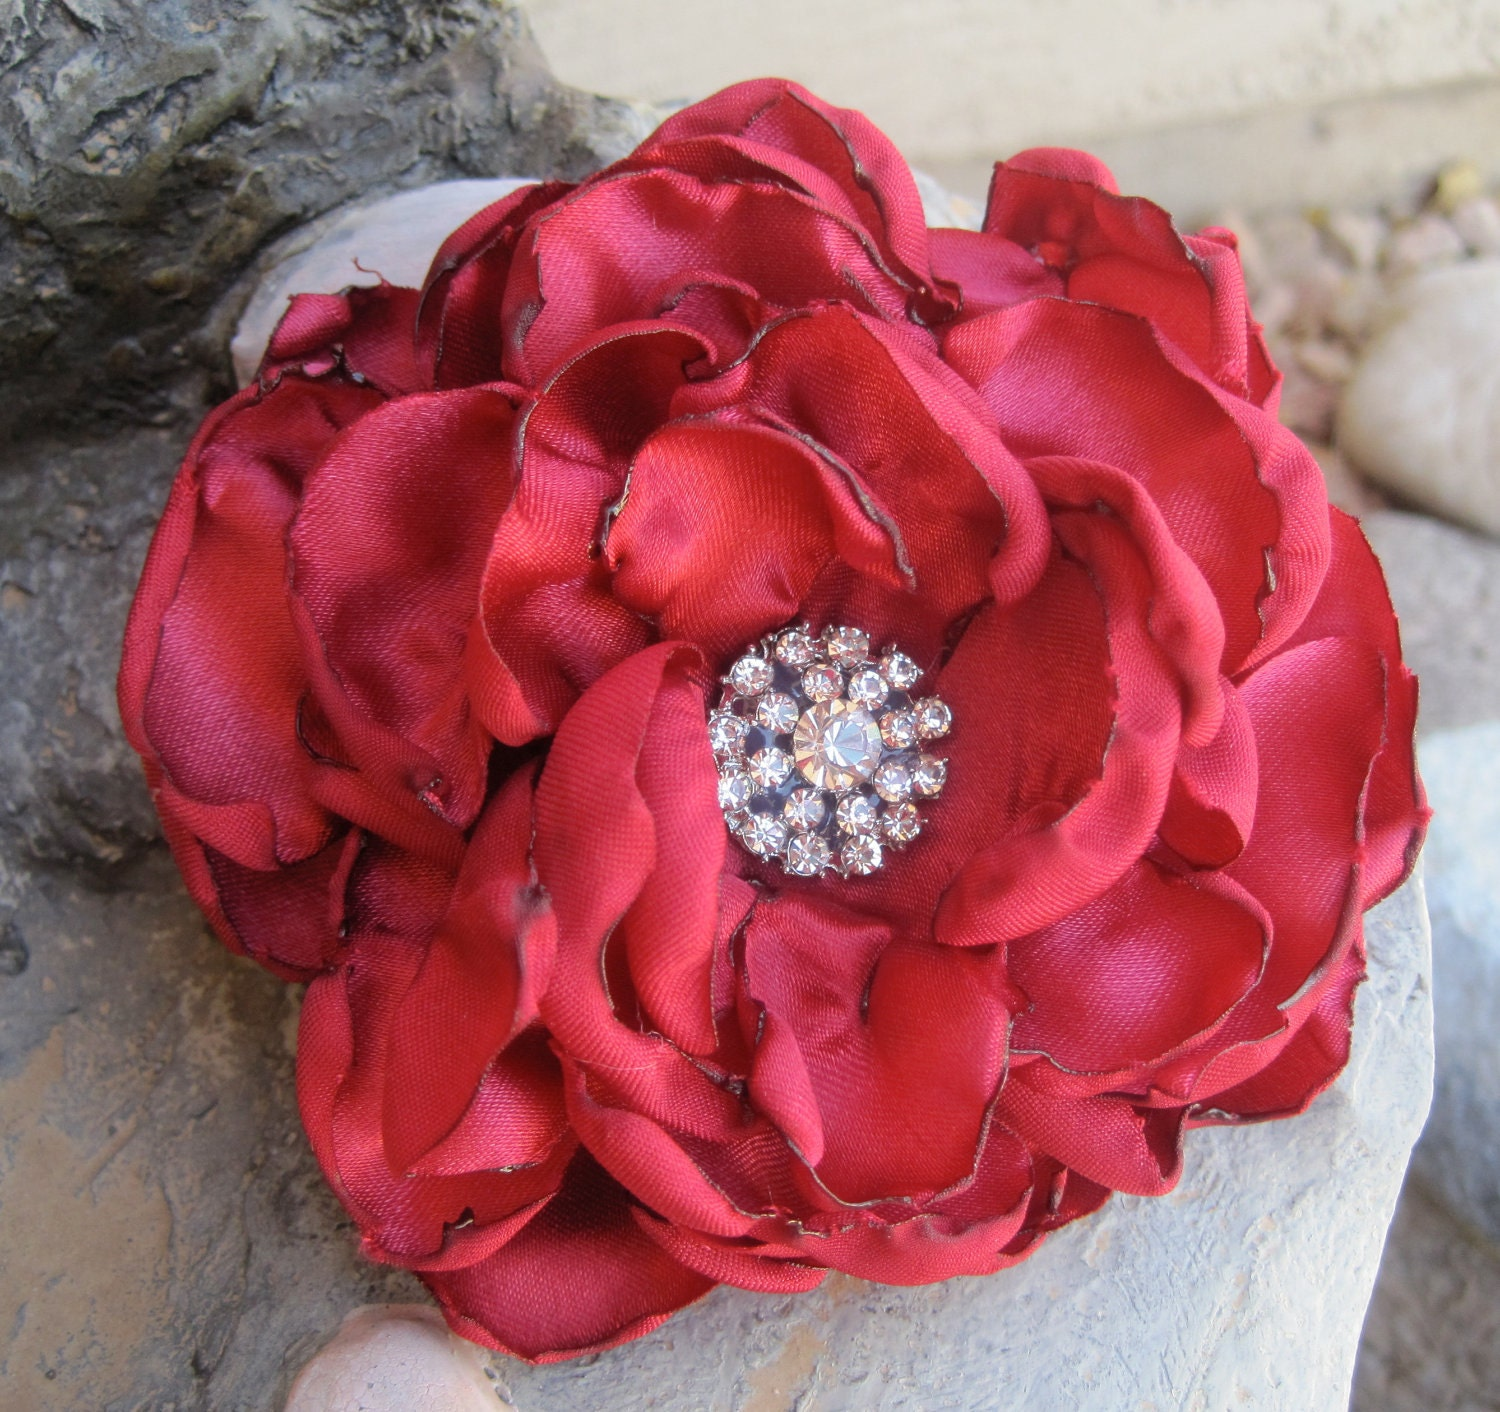 Red Satin  Bridal Wedding  Flower Fascinator Hair Clip Brooch with Beautiful  Rhinestone Accent - theraggedyrose